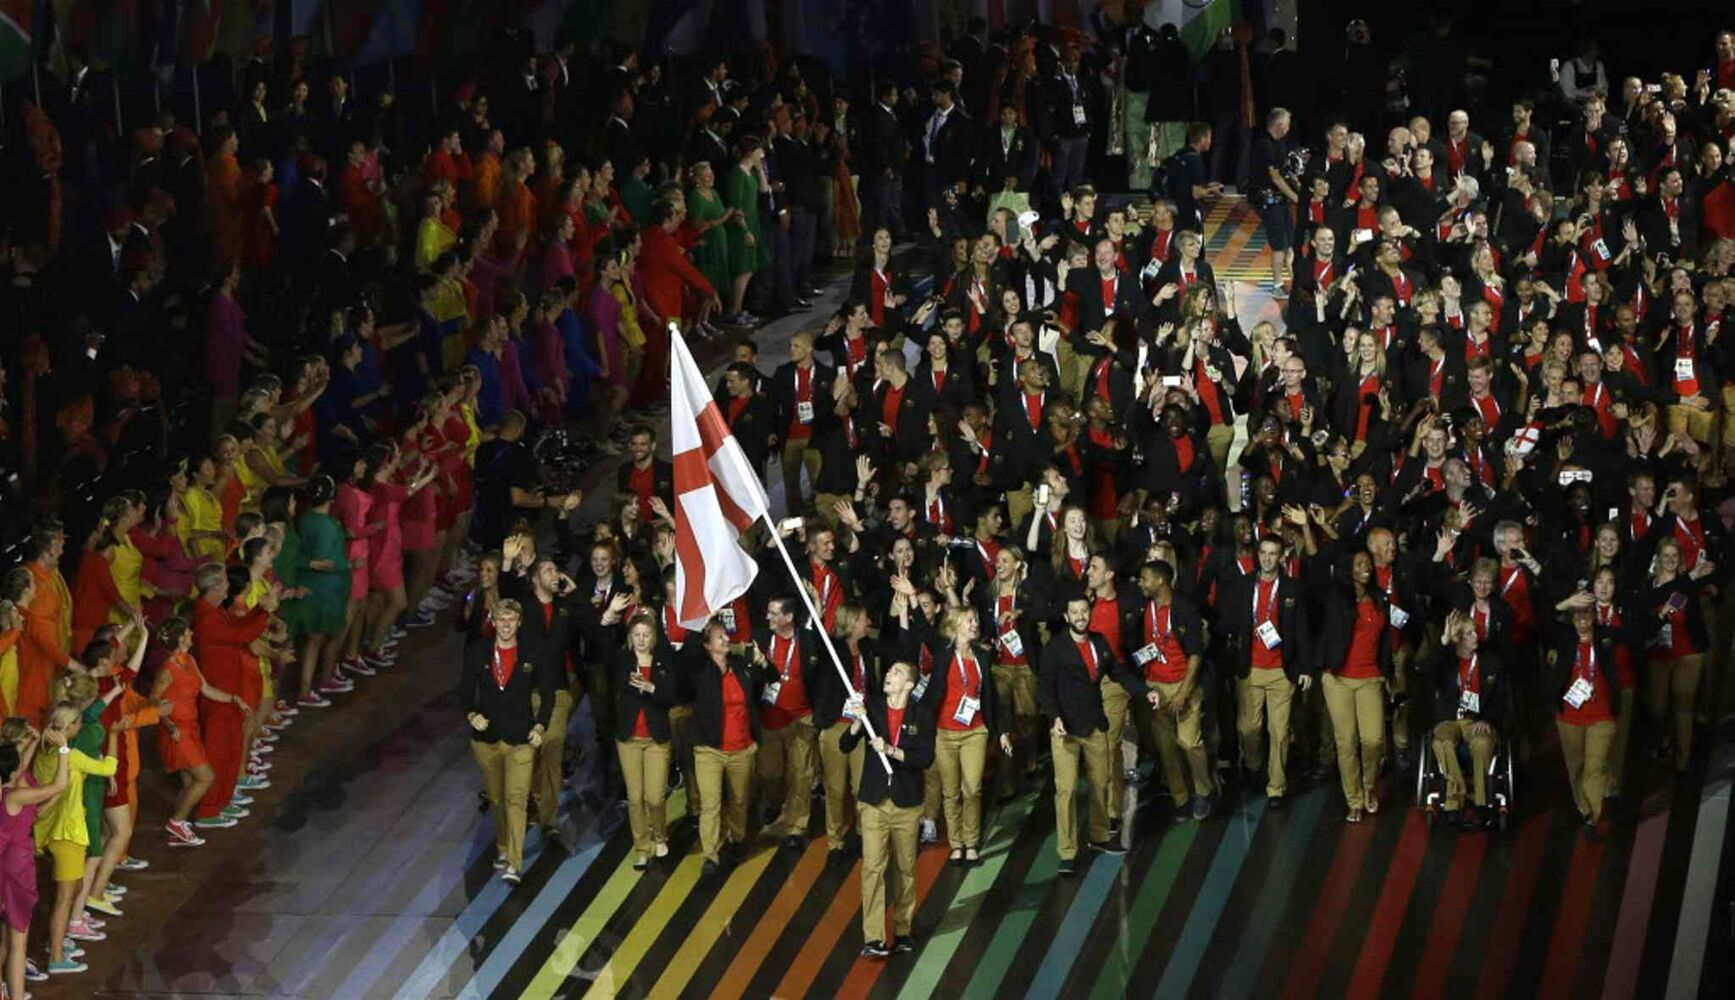 England's flag bearer Nick Matthews leads the team into the arena during the opening ceremony for the Commonwealth Games 2014. (Kirsty Wigglesworth / The Associated Press)